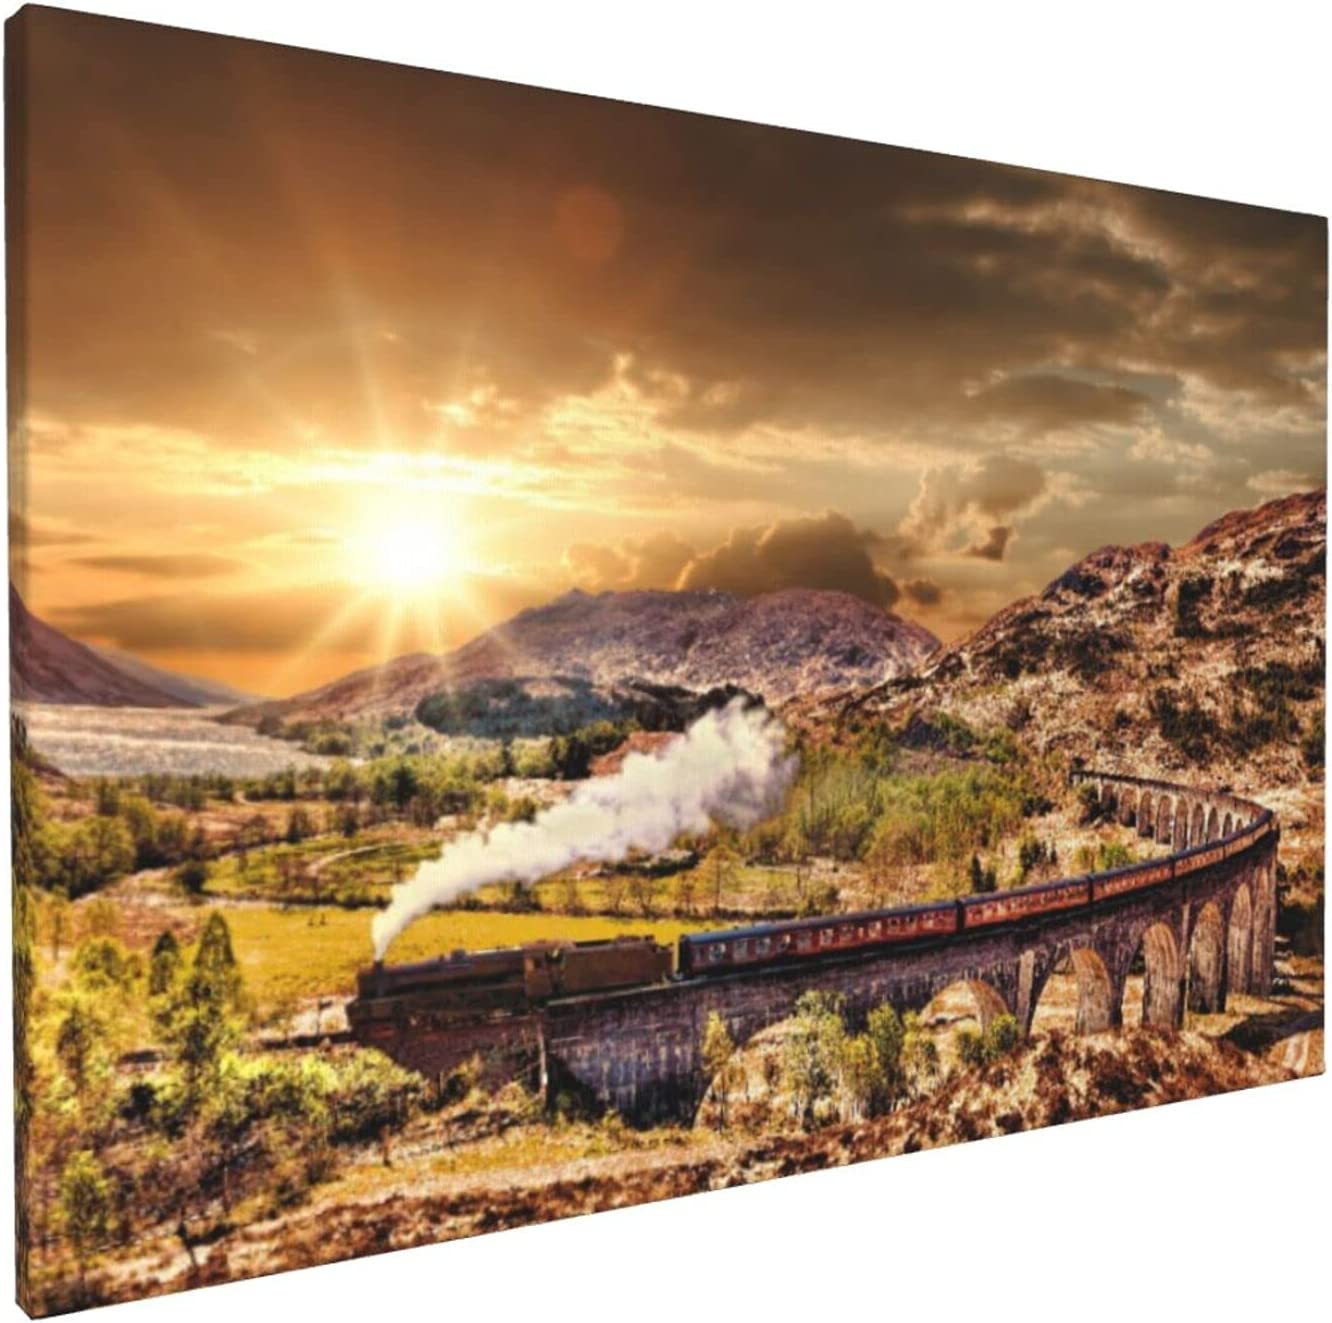 Canvas Wall Art,Glenfinnan Railway Viaduct In Scotland With The Jacobite Steam Train Against Sunset Over Lake,Frameless Painting Home Decor for Living Room Bedroom Office Ready to Hang,18